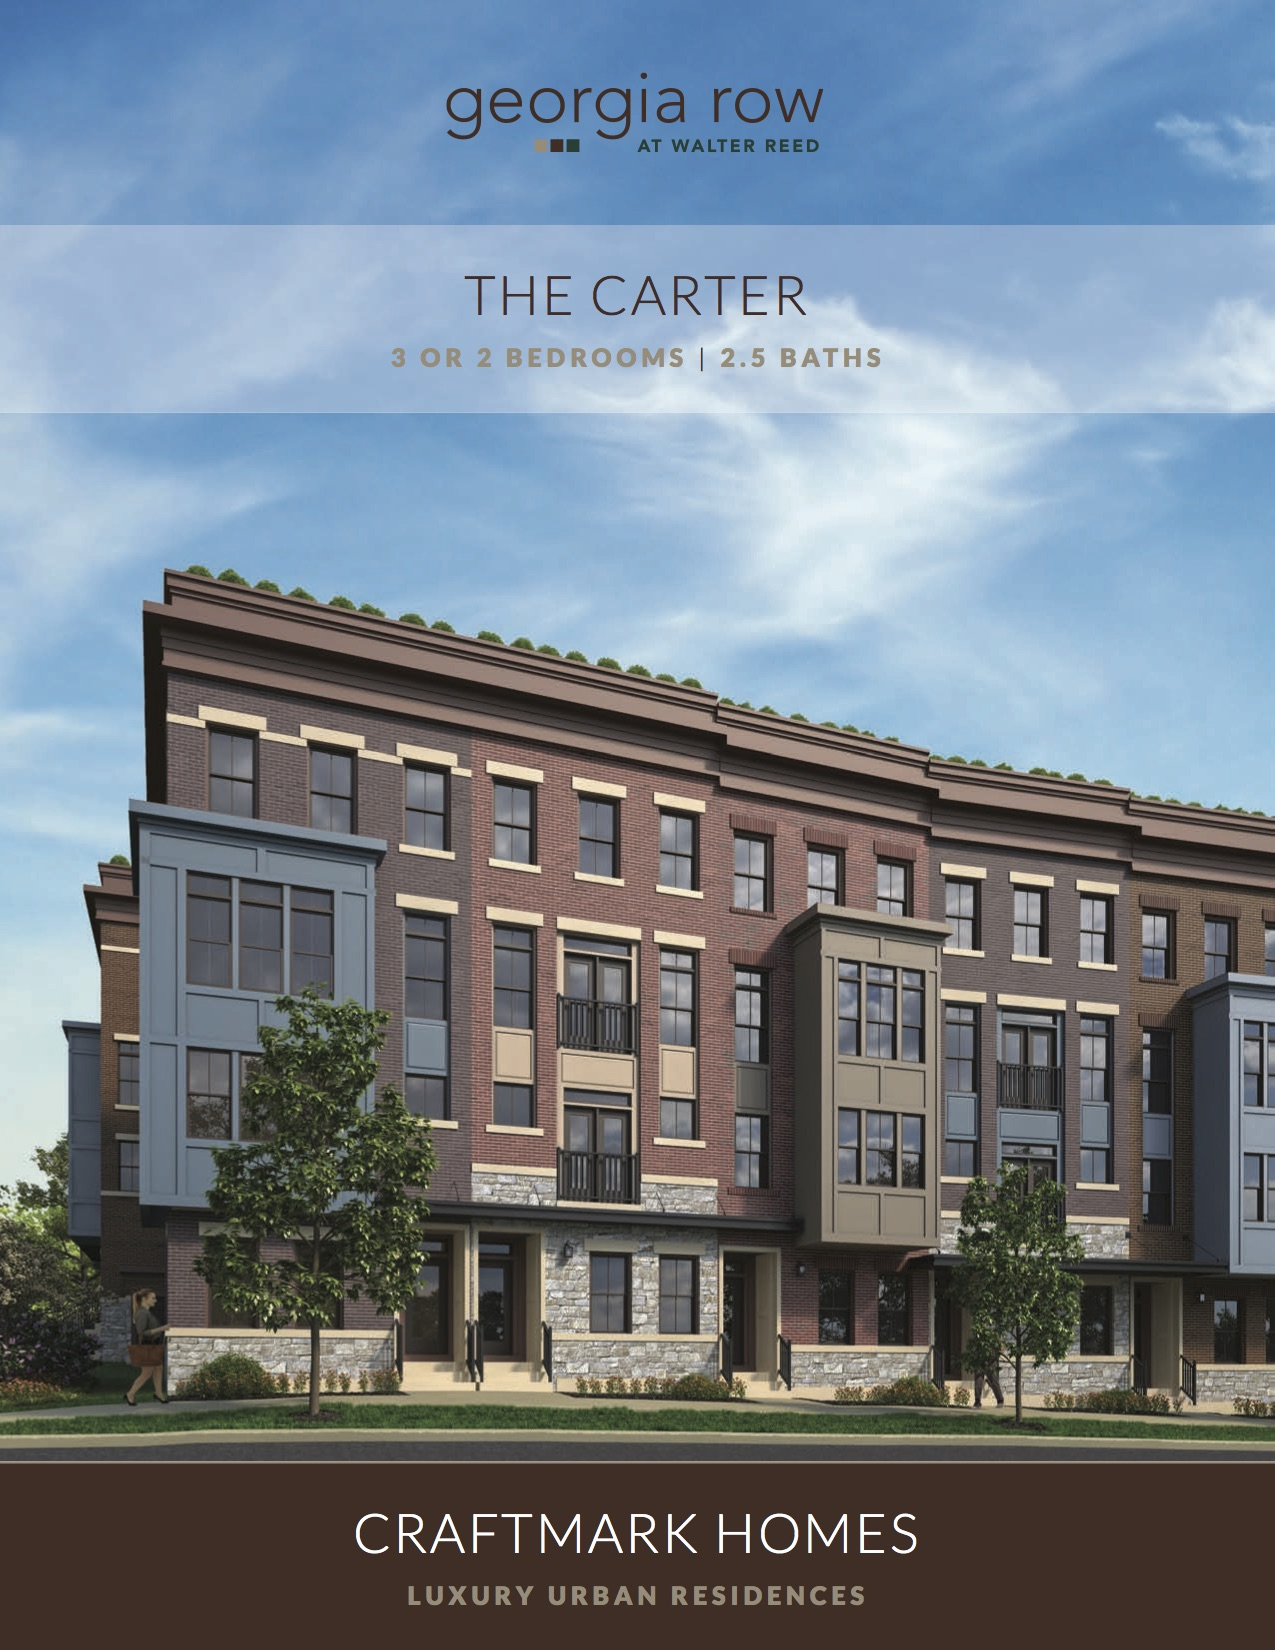 Condominium for Sale at Georgia Row At Walter Reed-The Carter Georgia Ave & Fern Pl NW Washington, District Of Columbia 20012 United States